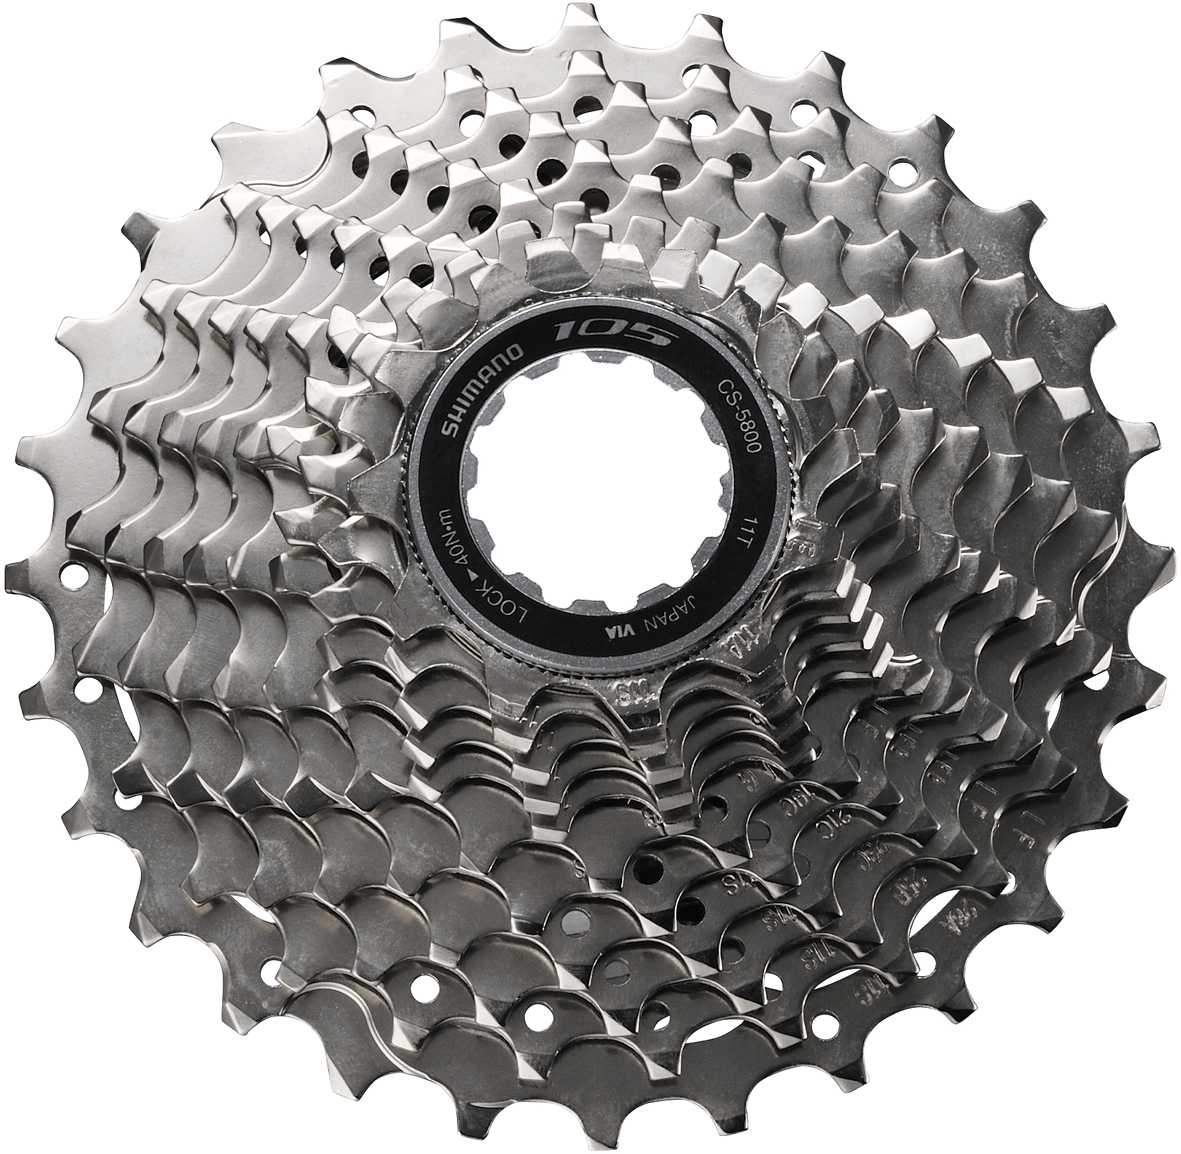 Shimano 105 5800 11 Speed 11-28 Tooth Cassette